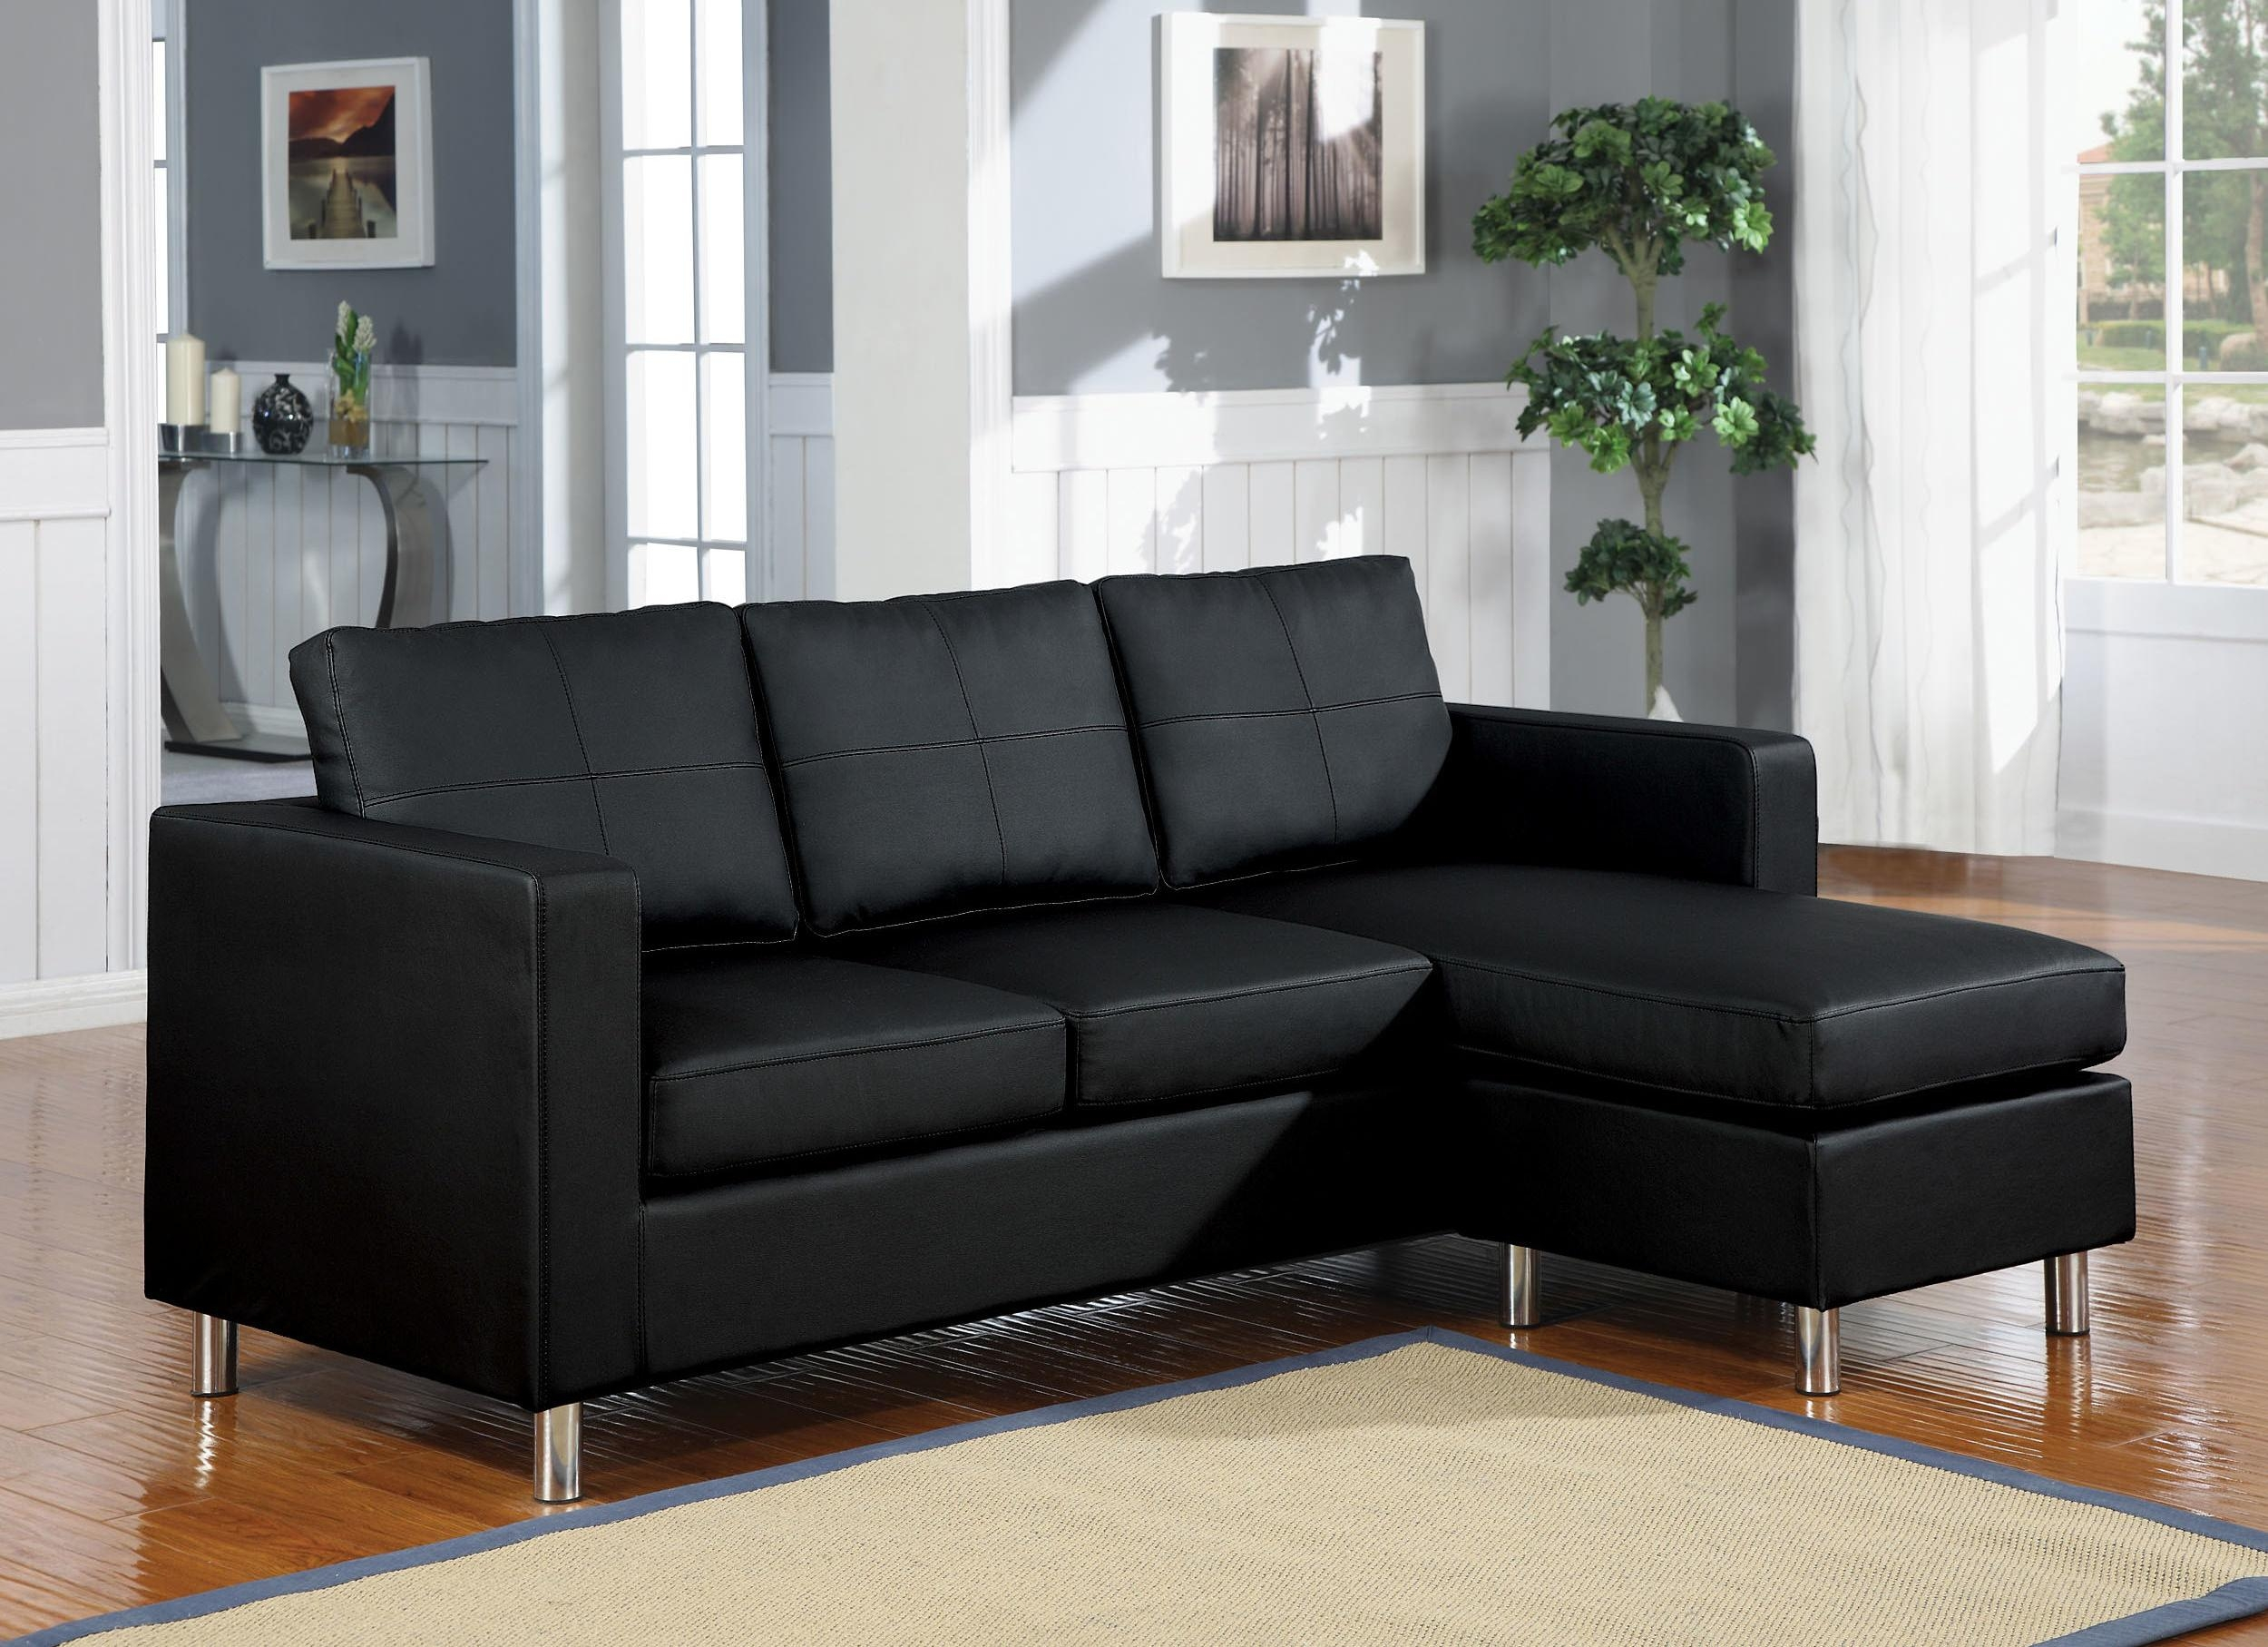 Cloud Sectional Sofa | Sofa Gallery | Kengire With Cloud Sectional Sofas (Image 6 of 20)